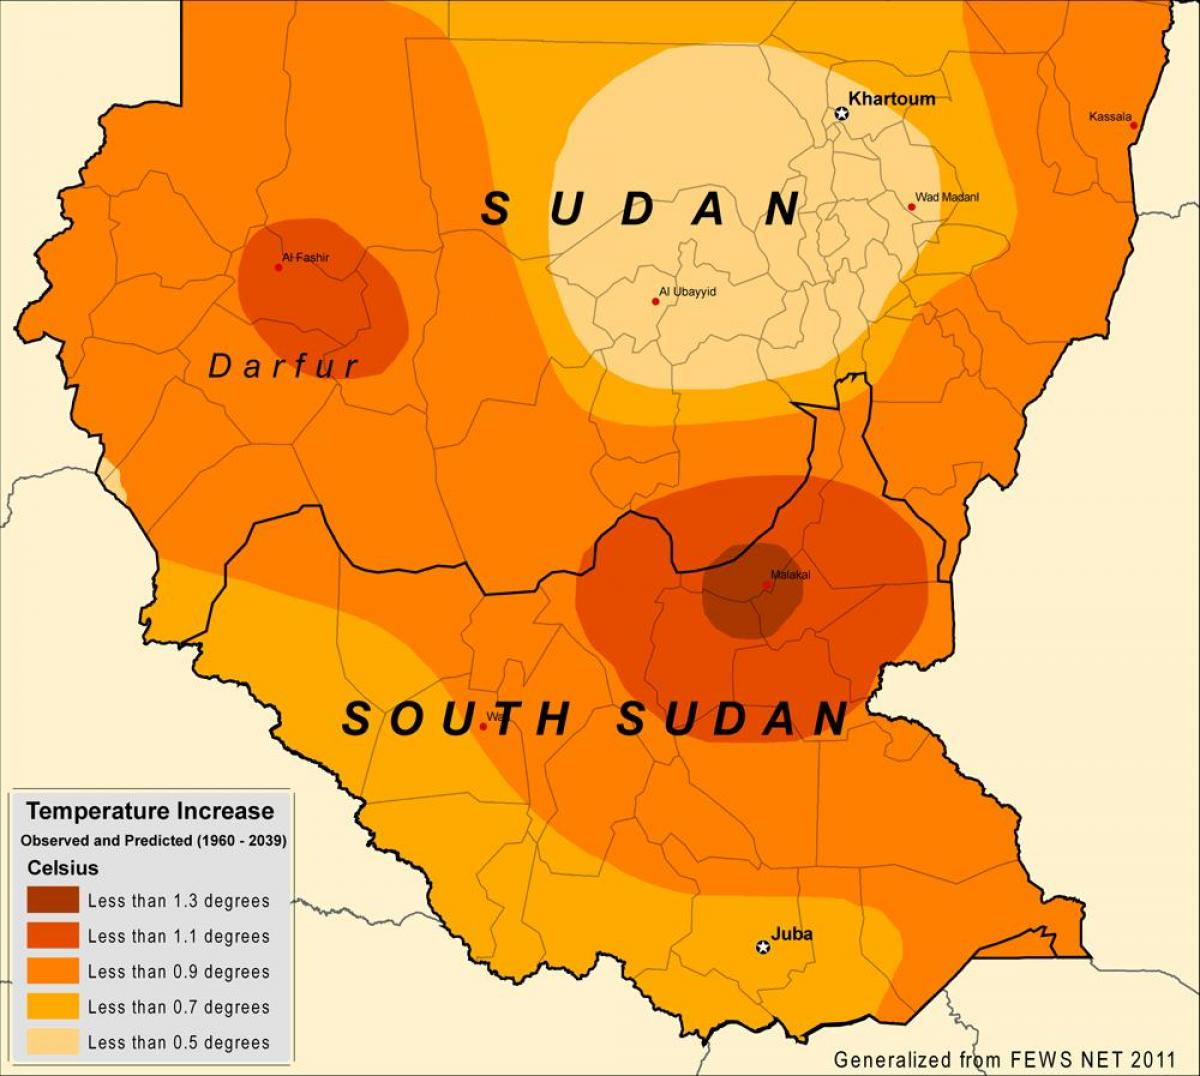 Sudan climate map - Map of Sudan climate (Northern Africa ... on map of sri lanka climate, map of new zealand climate, map of south west asia climate, map of china climate, map of georgia climate, map of spain climate, map of germany climate, map of niger climate, map of chad climate, map of chile climate, map of madagascar climate, map of mongolia climate, map of united states climate, map of south korea climate, map of puerto rico climate, map of greece climate, map of iran climate, map of latin america climate, map of india climate, map of middle east climate,